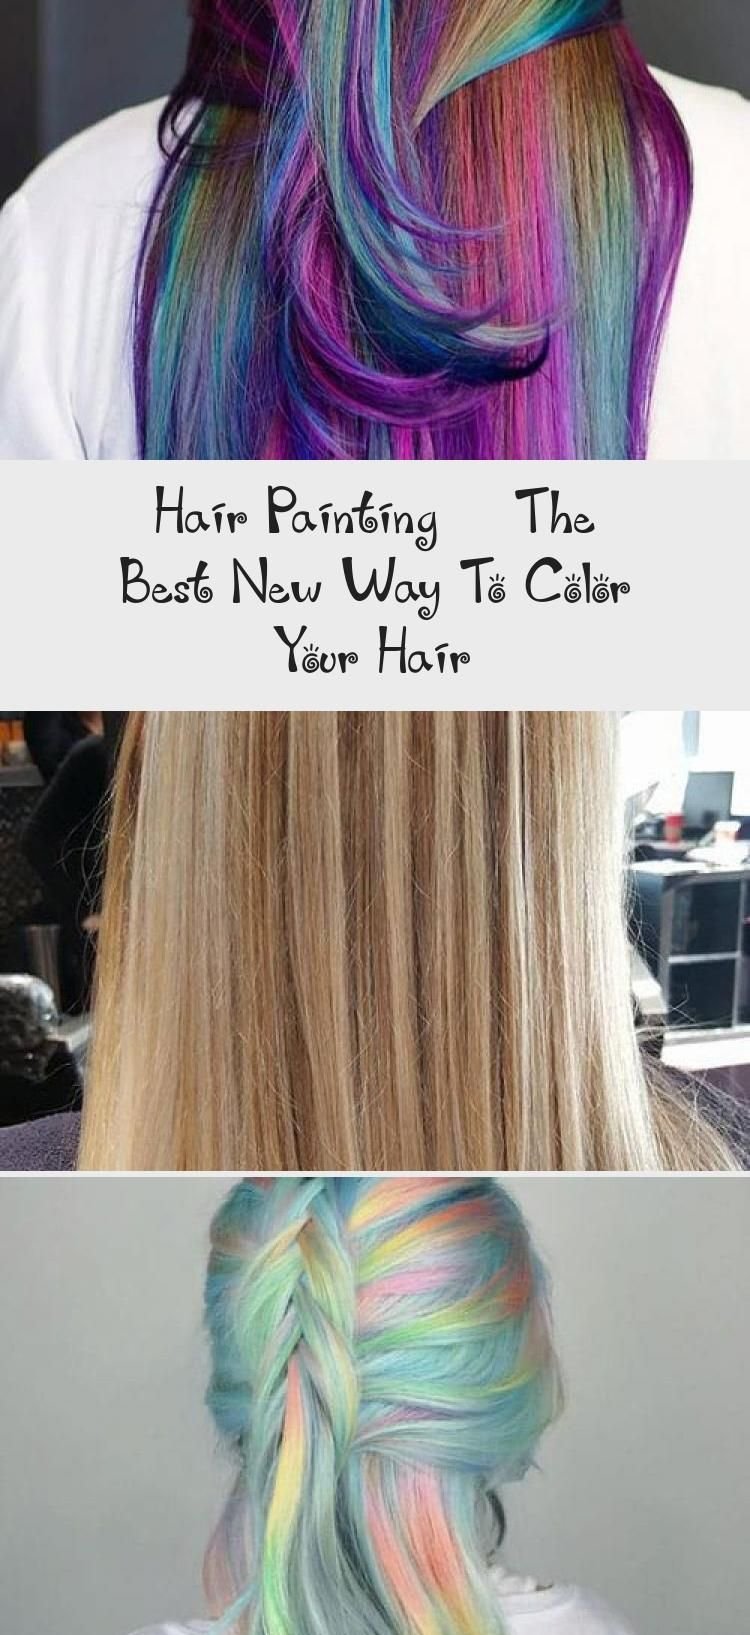 Pin Trend In 2020 Hair Painting Cool Hairstyles Fluid Hair Painting